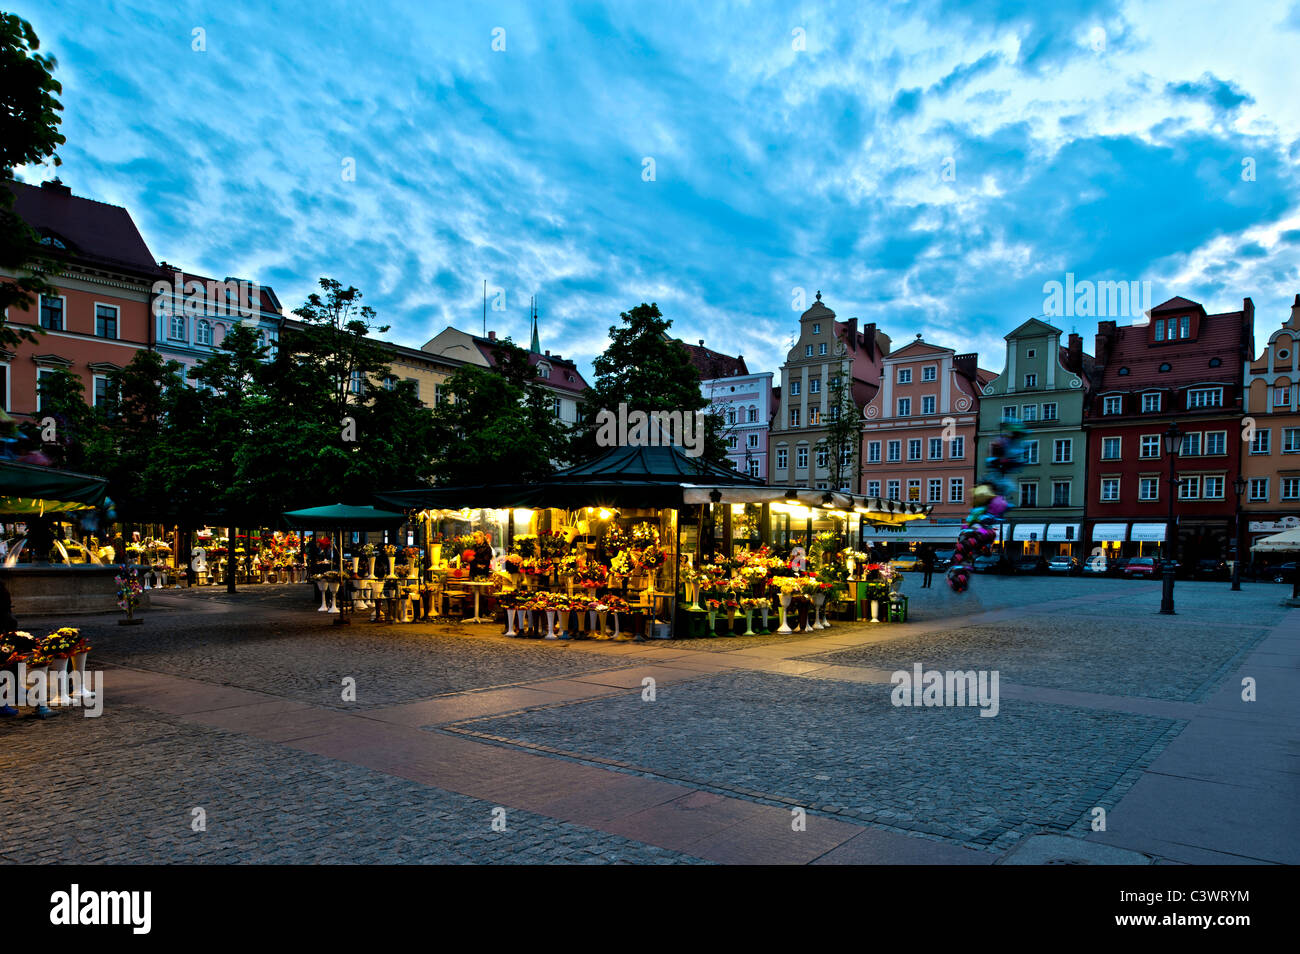 Flower market on Solny Square, Wroclaw, Poland - Stock Image